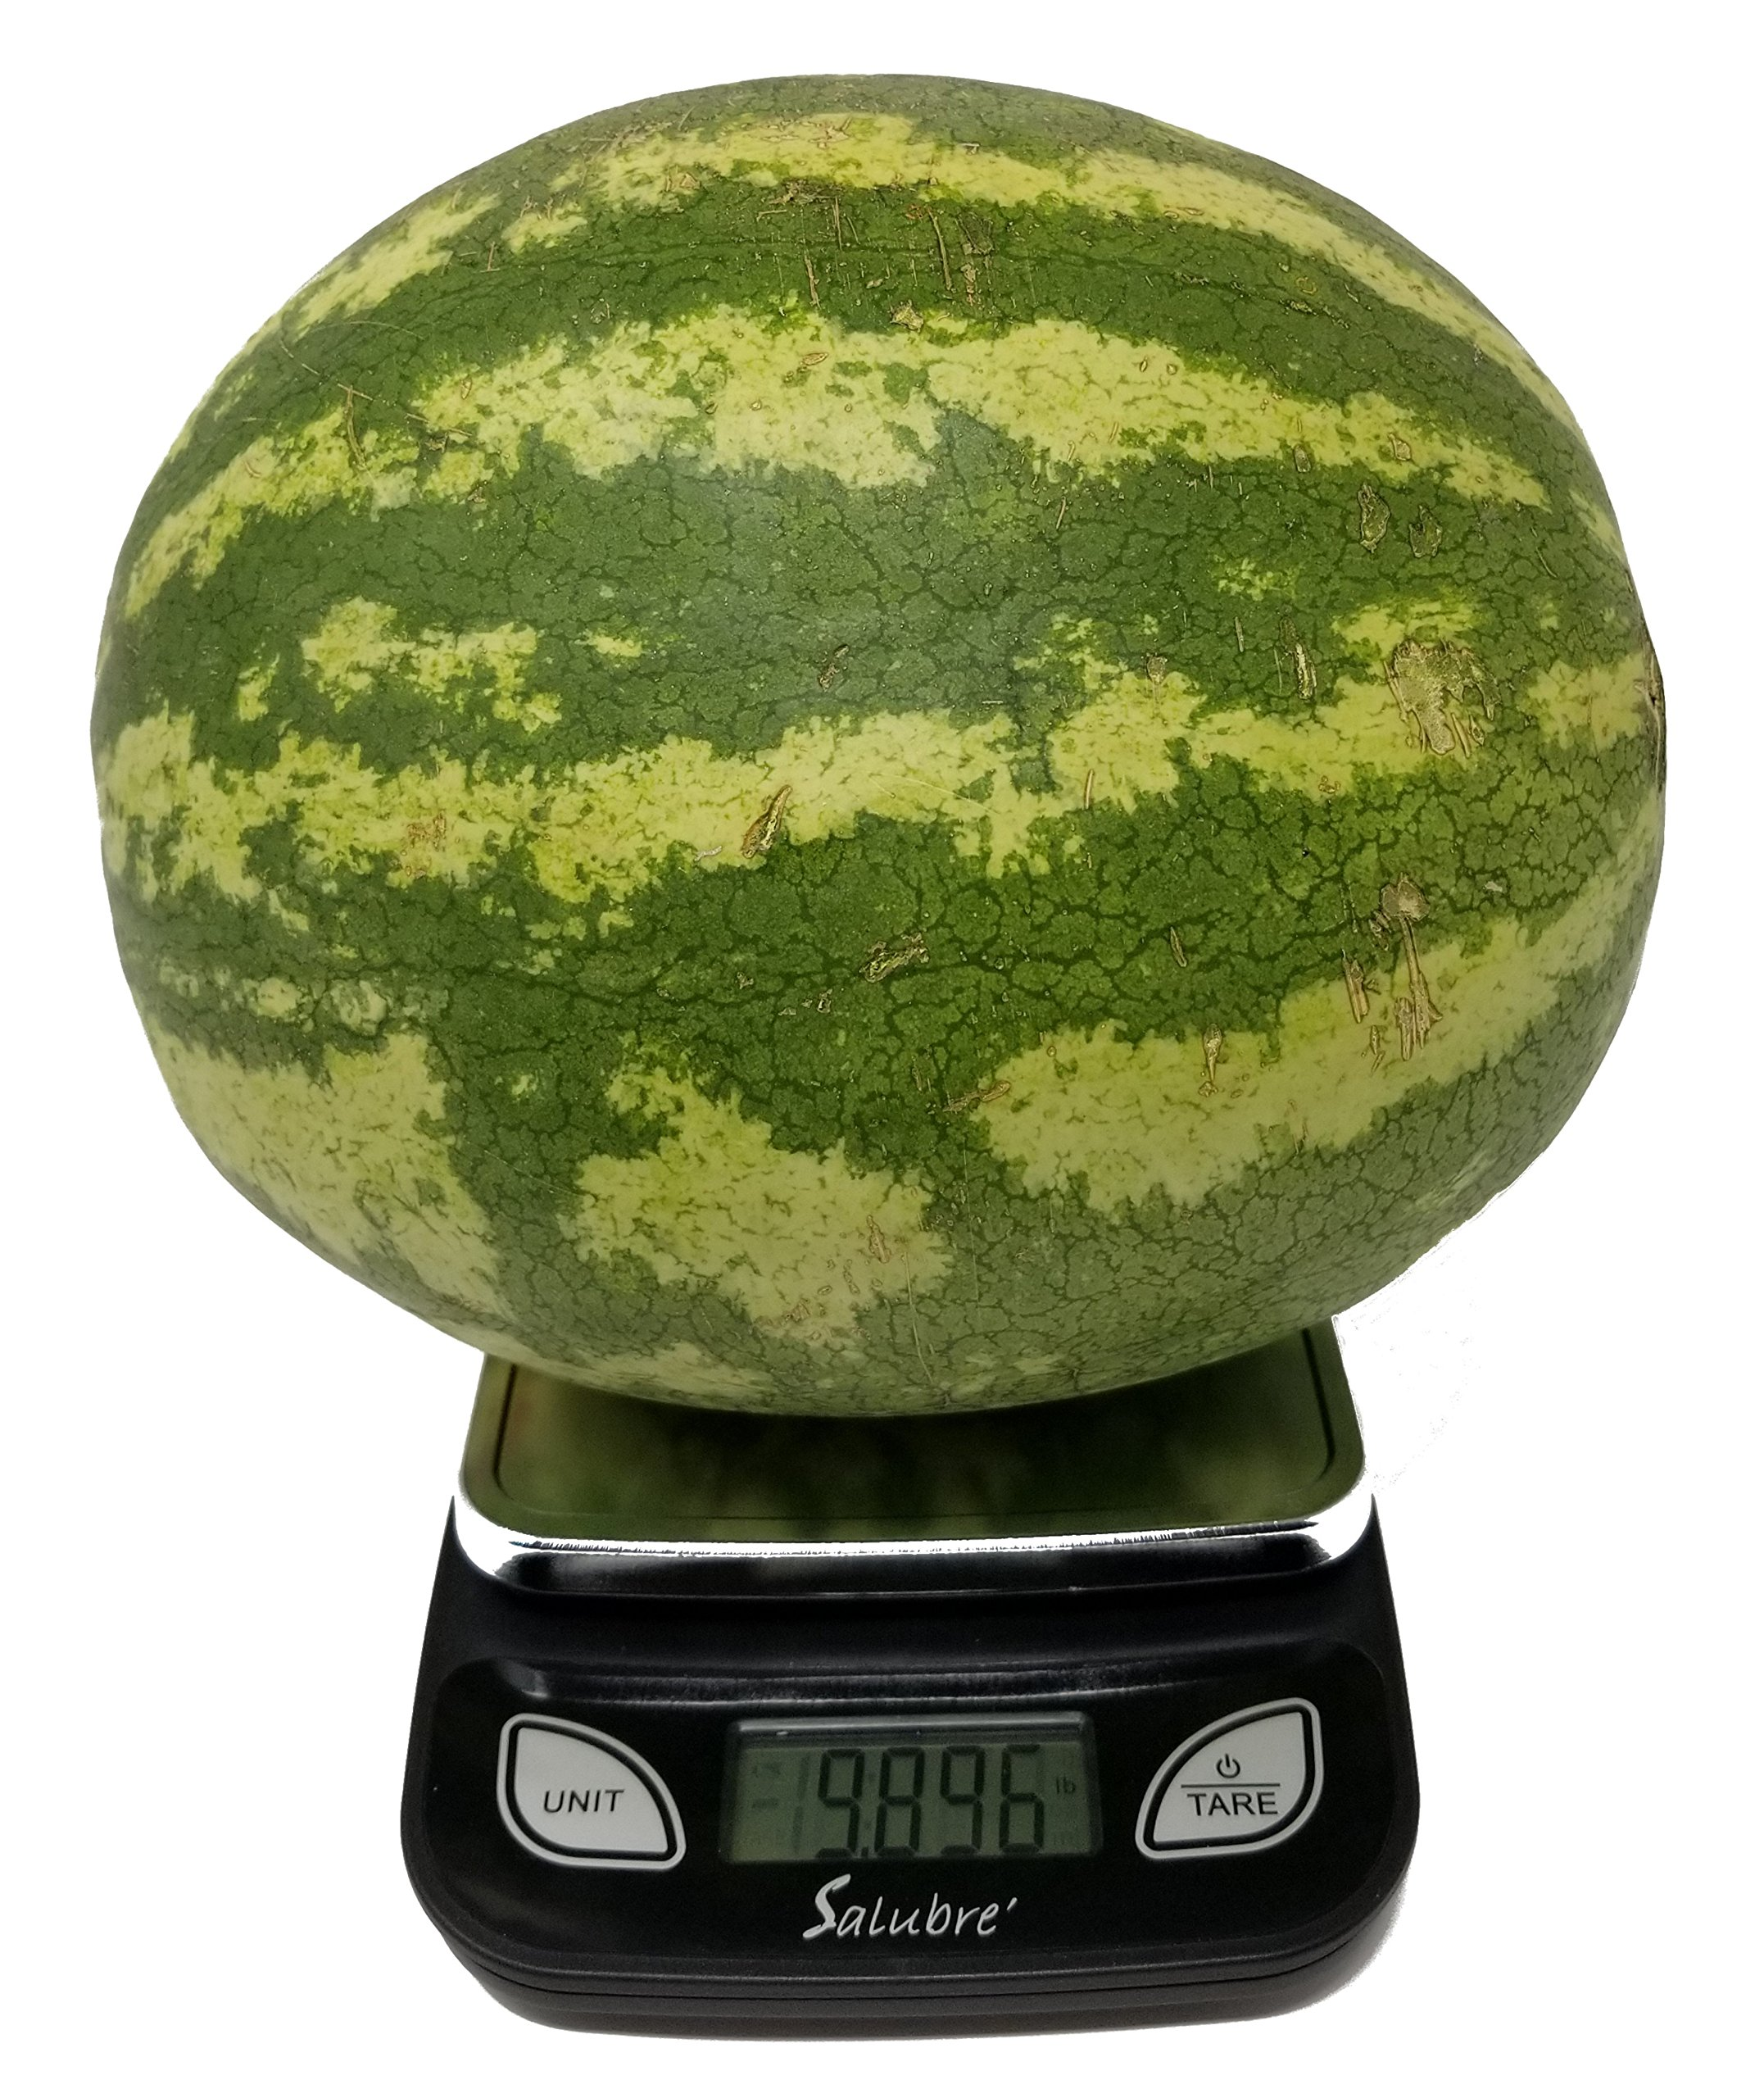 Digital Food Scale/Kitchen Scale/Postal Scale – Weigh in Pounds, Ounces, Grams - Precise Weight Scale 1g (0.04oz) to 11 lbs - Batteries Included